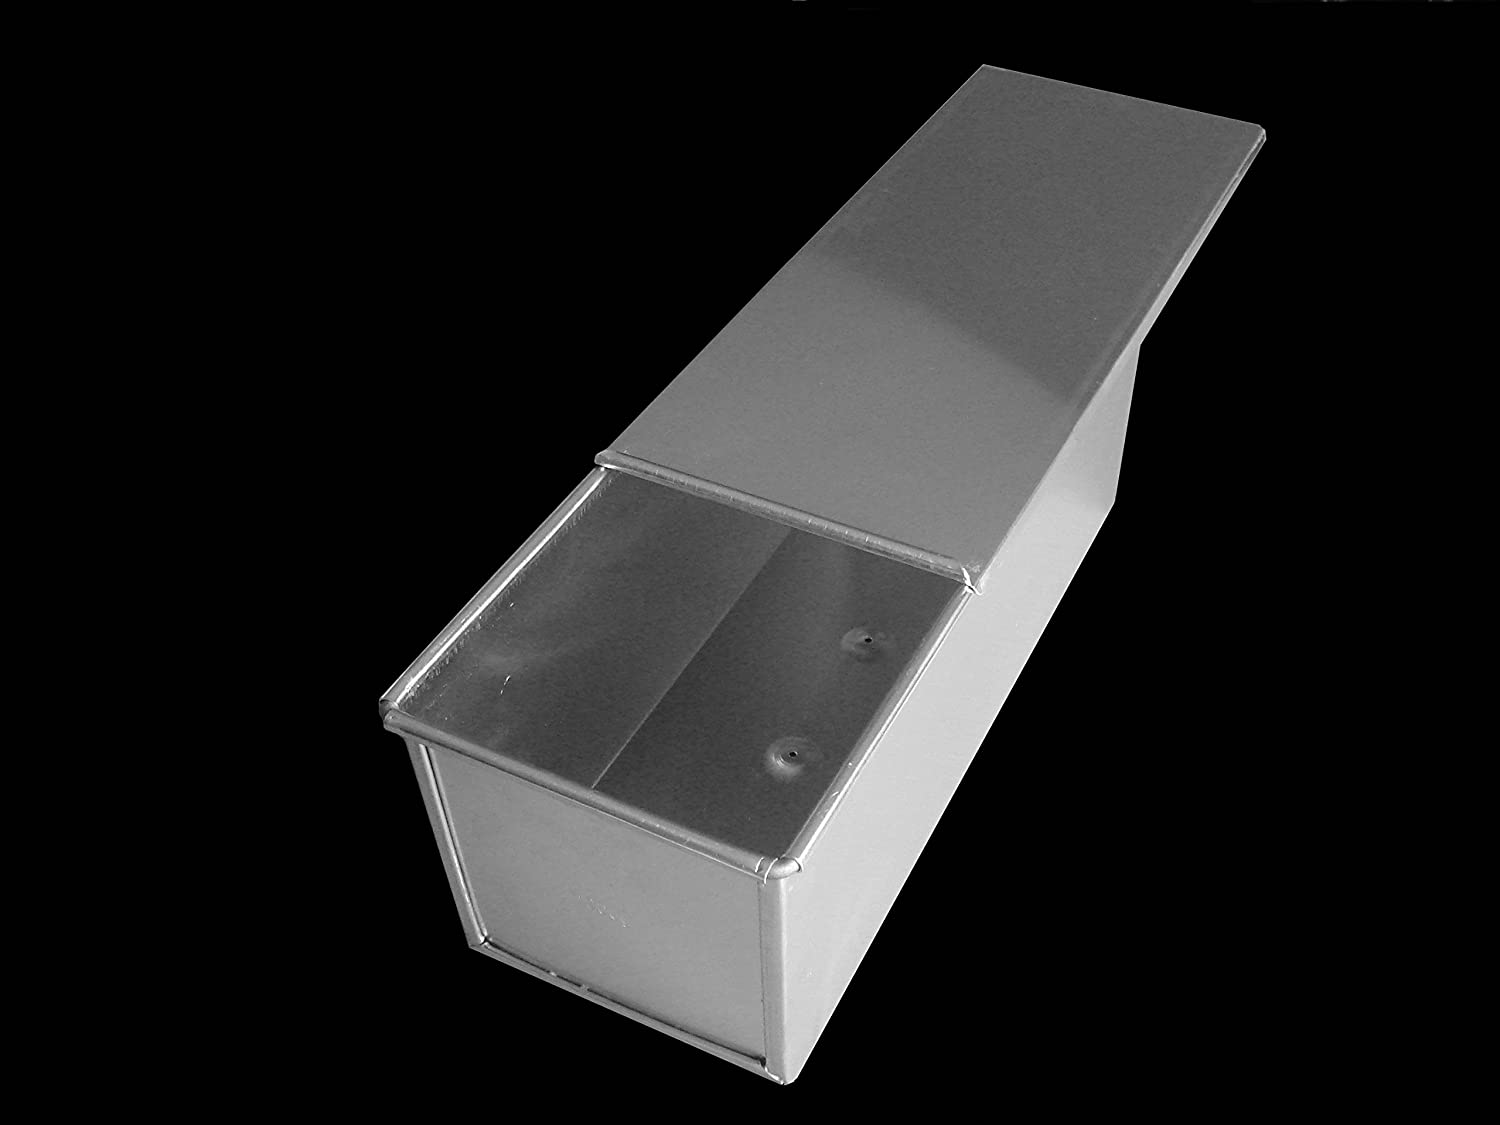 BREAD LOAF TIN PAN BOX 1000g PULLMAN SANDWICH LOAF WITH LID HOME BAKING FRESH BREAD ALUMINIUM NEW FROM CFU UK HHNM